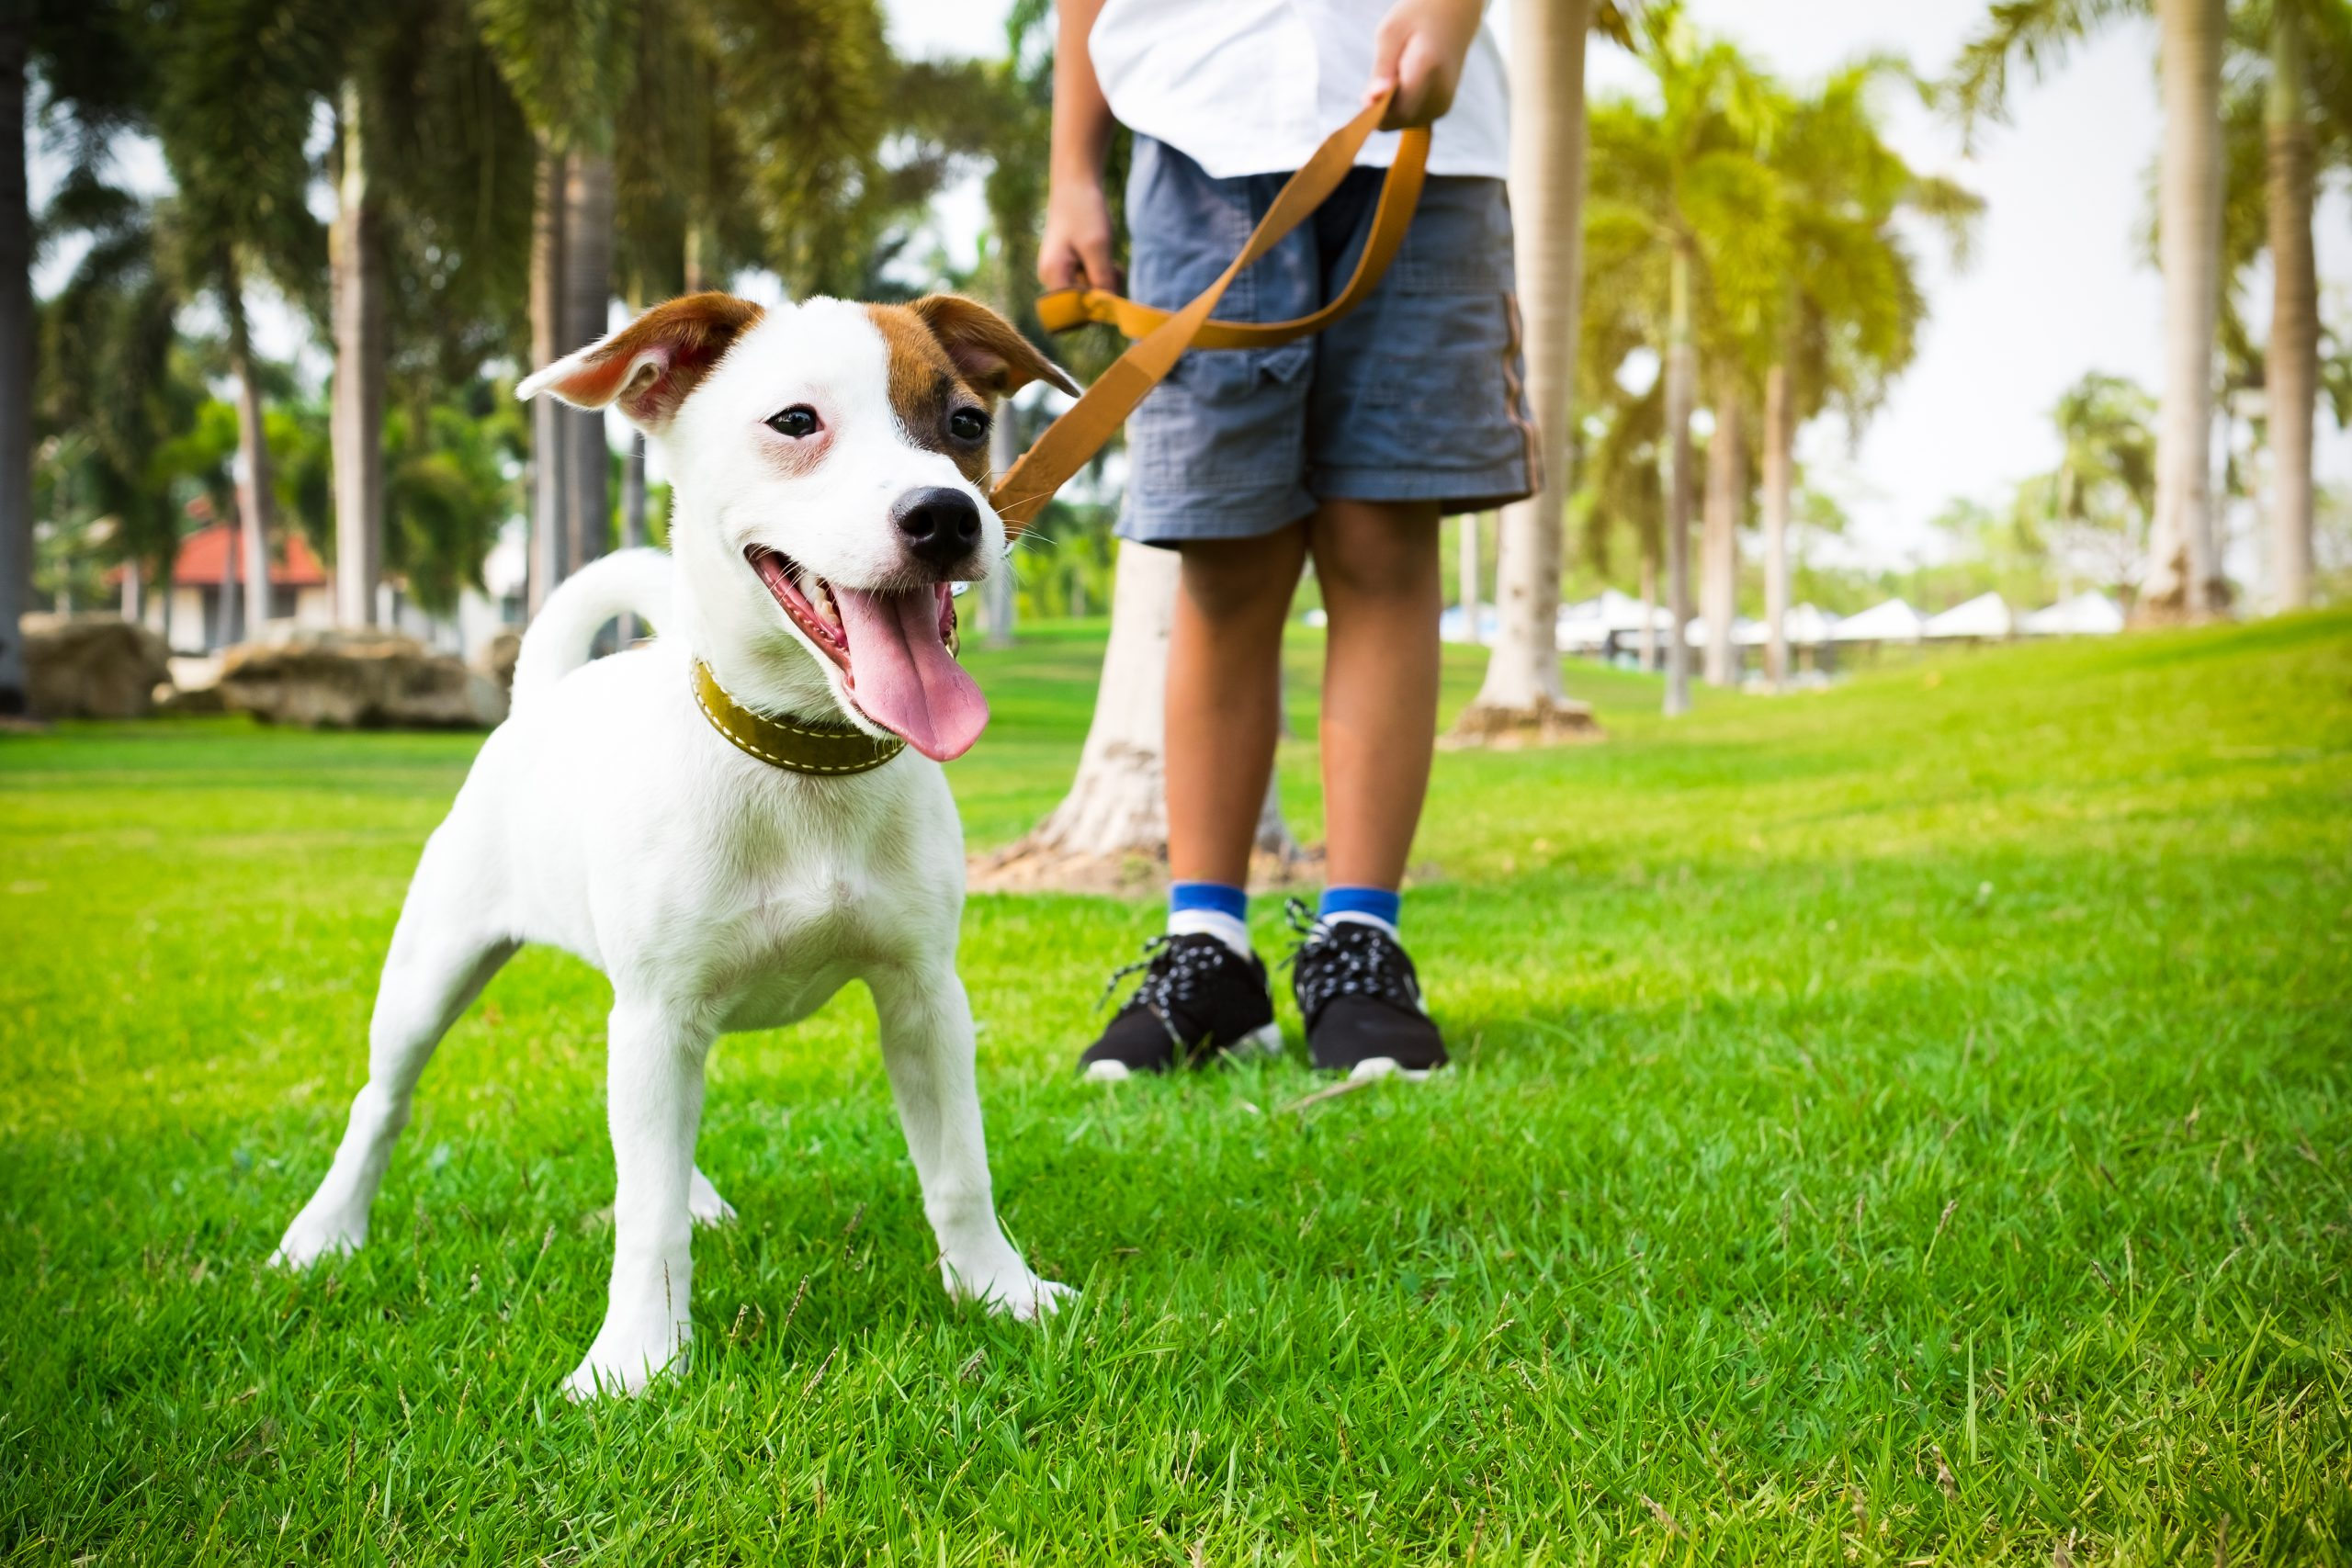 Dog smiling with tongue out. Dog is being held on a leash